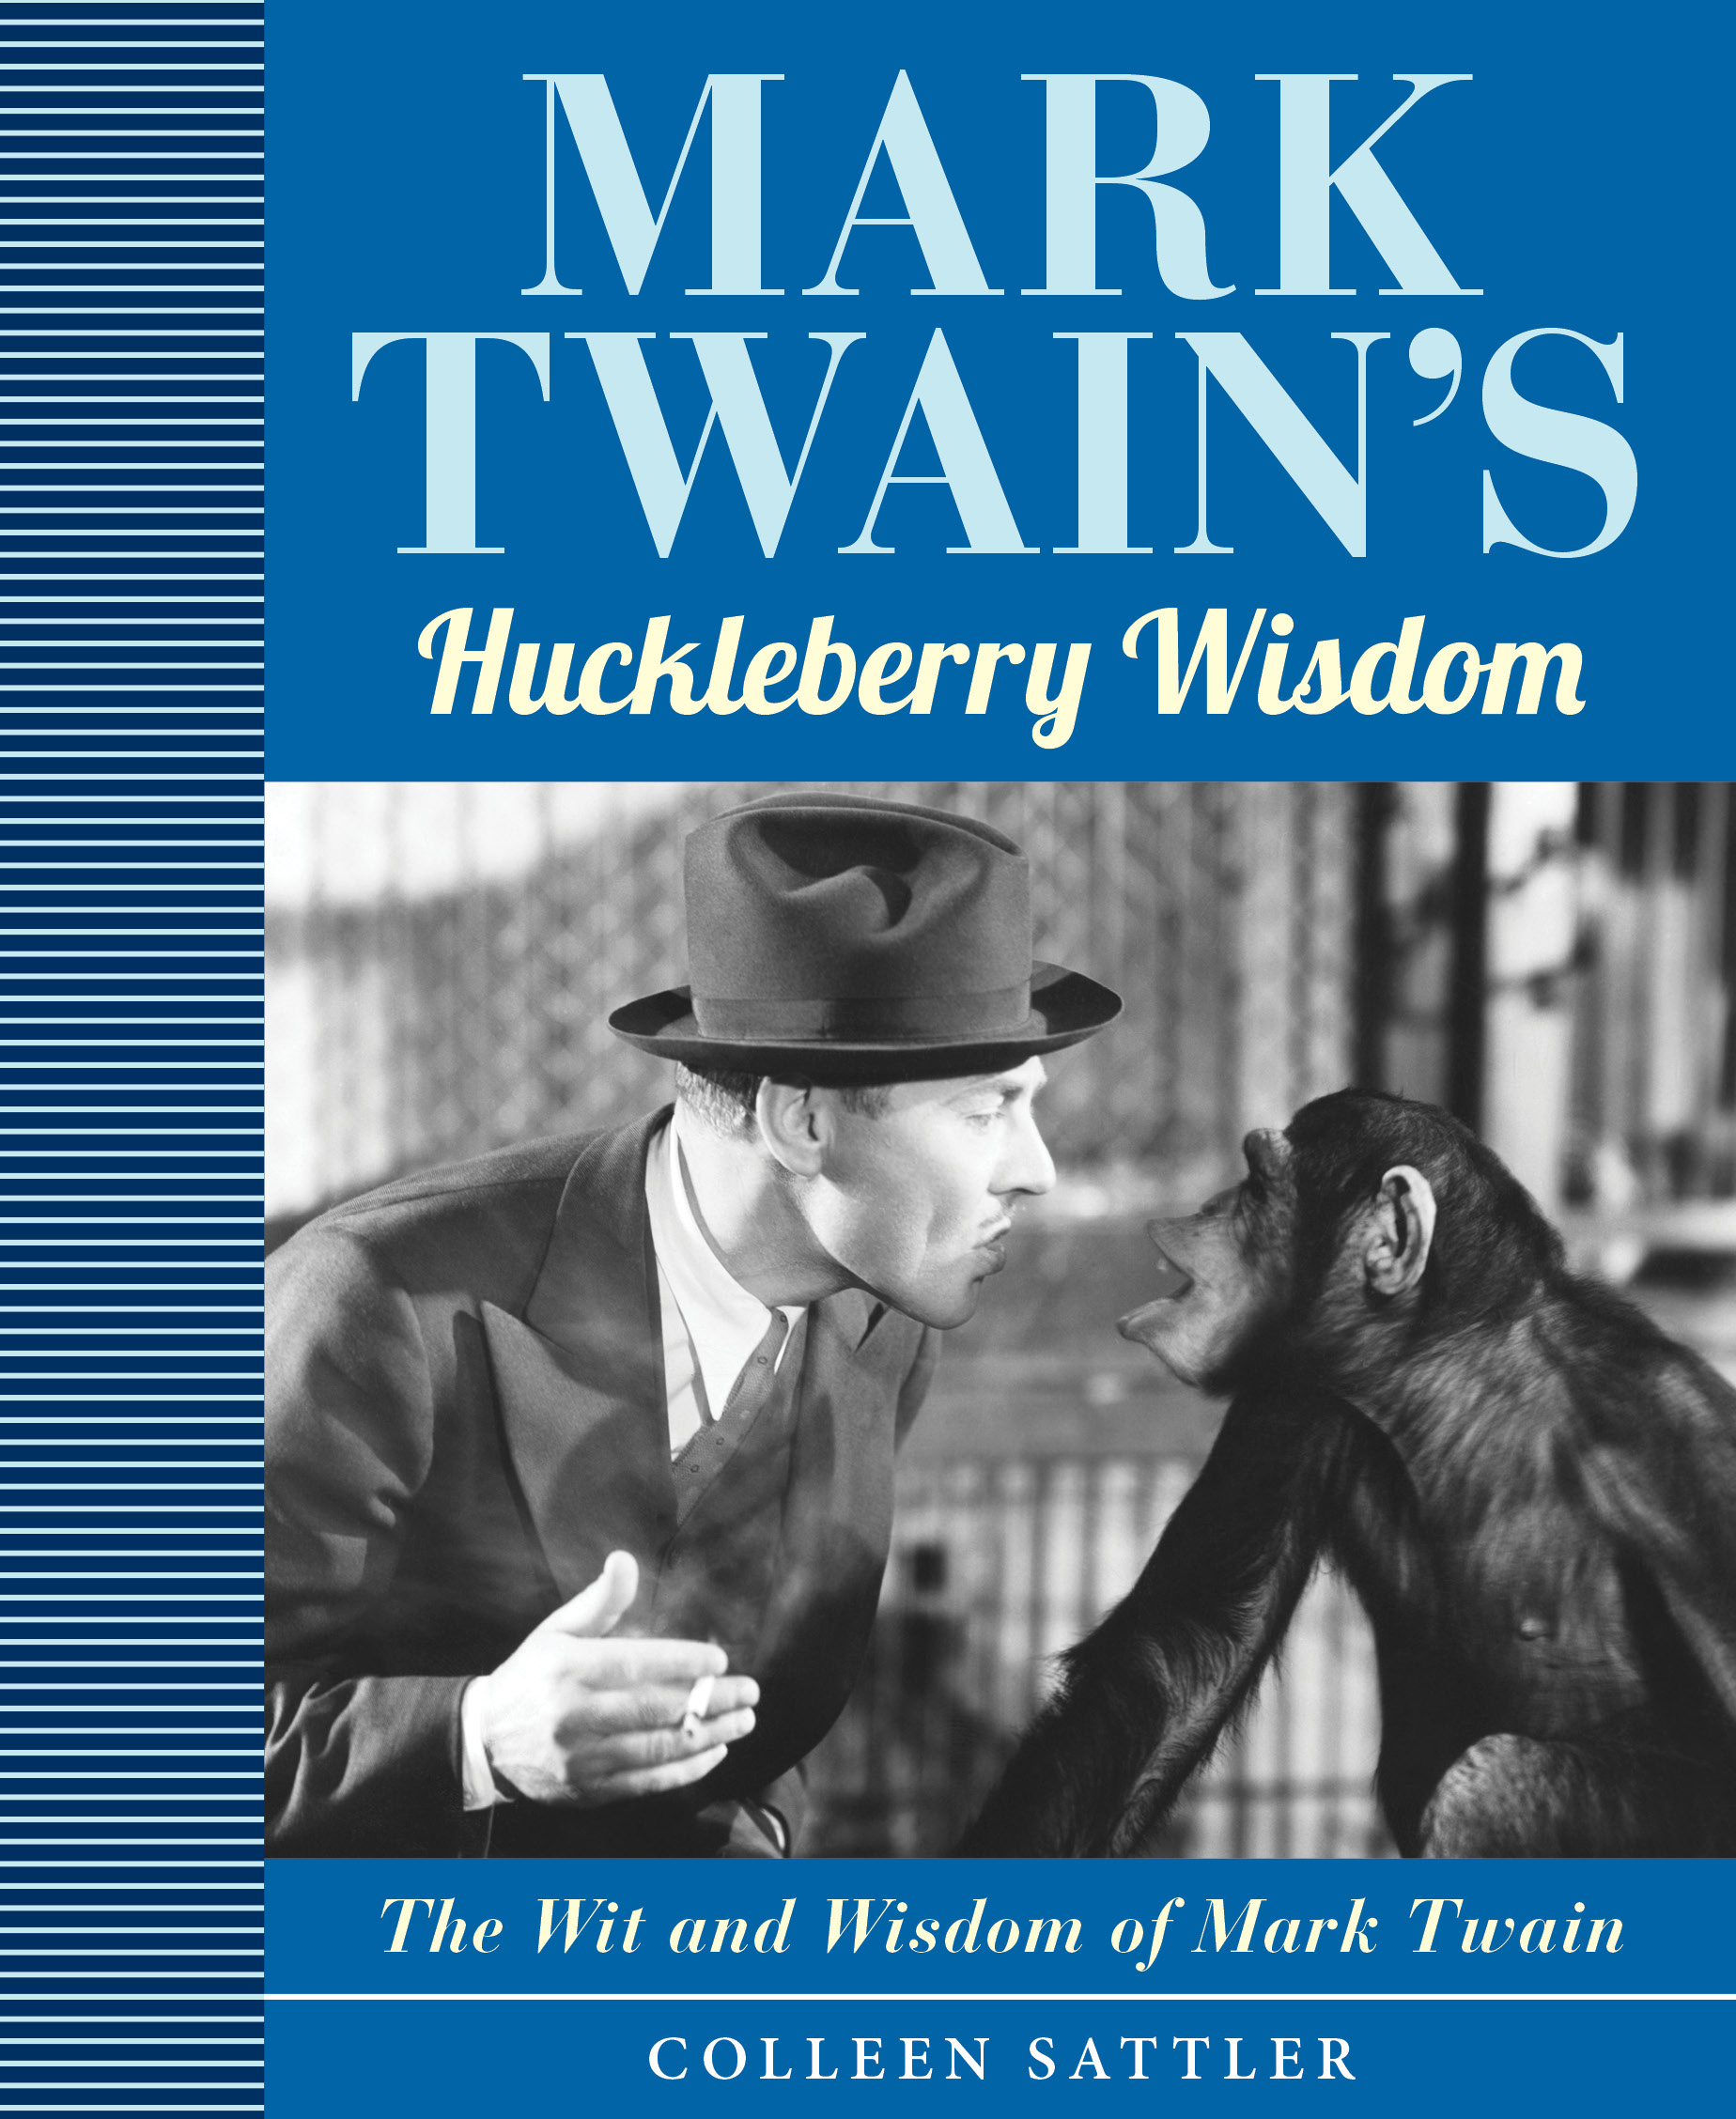 Mark Twain's Huckleberry Wisdom